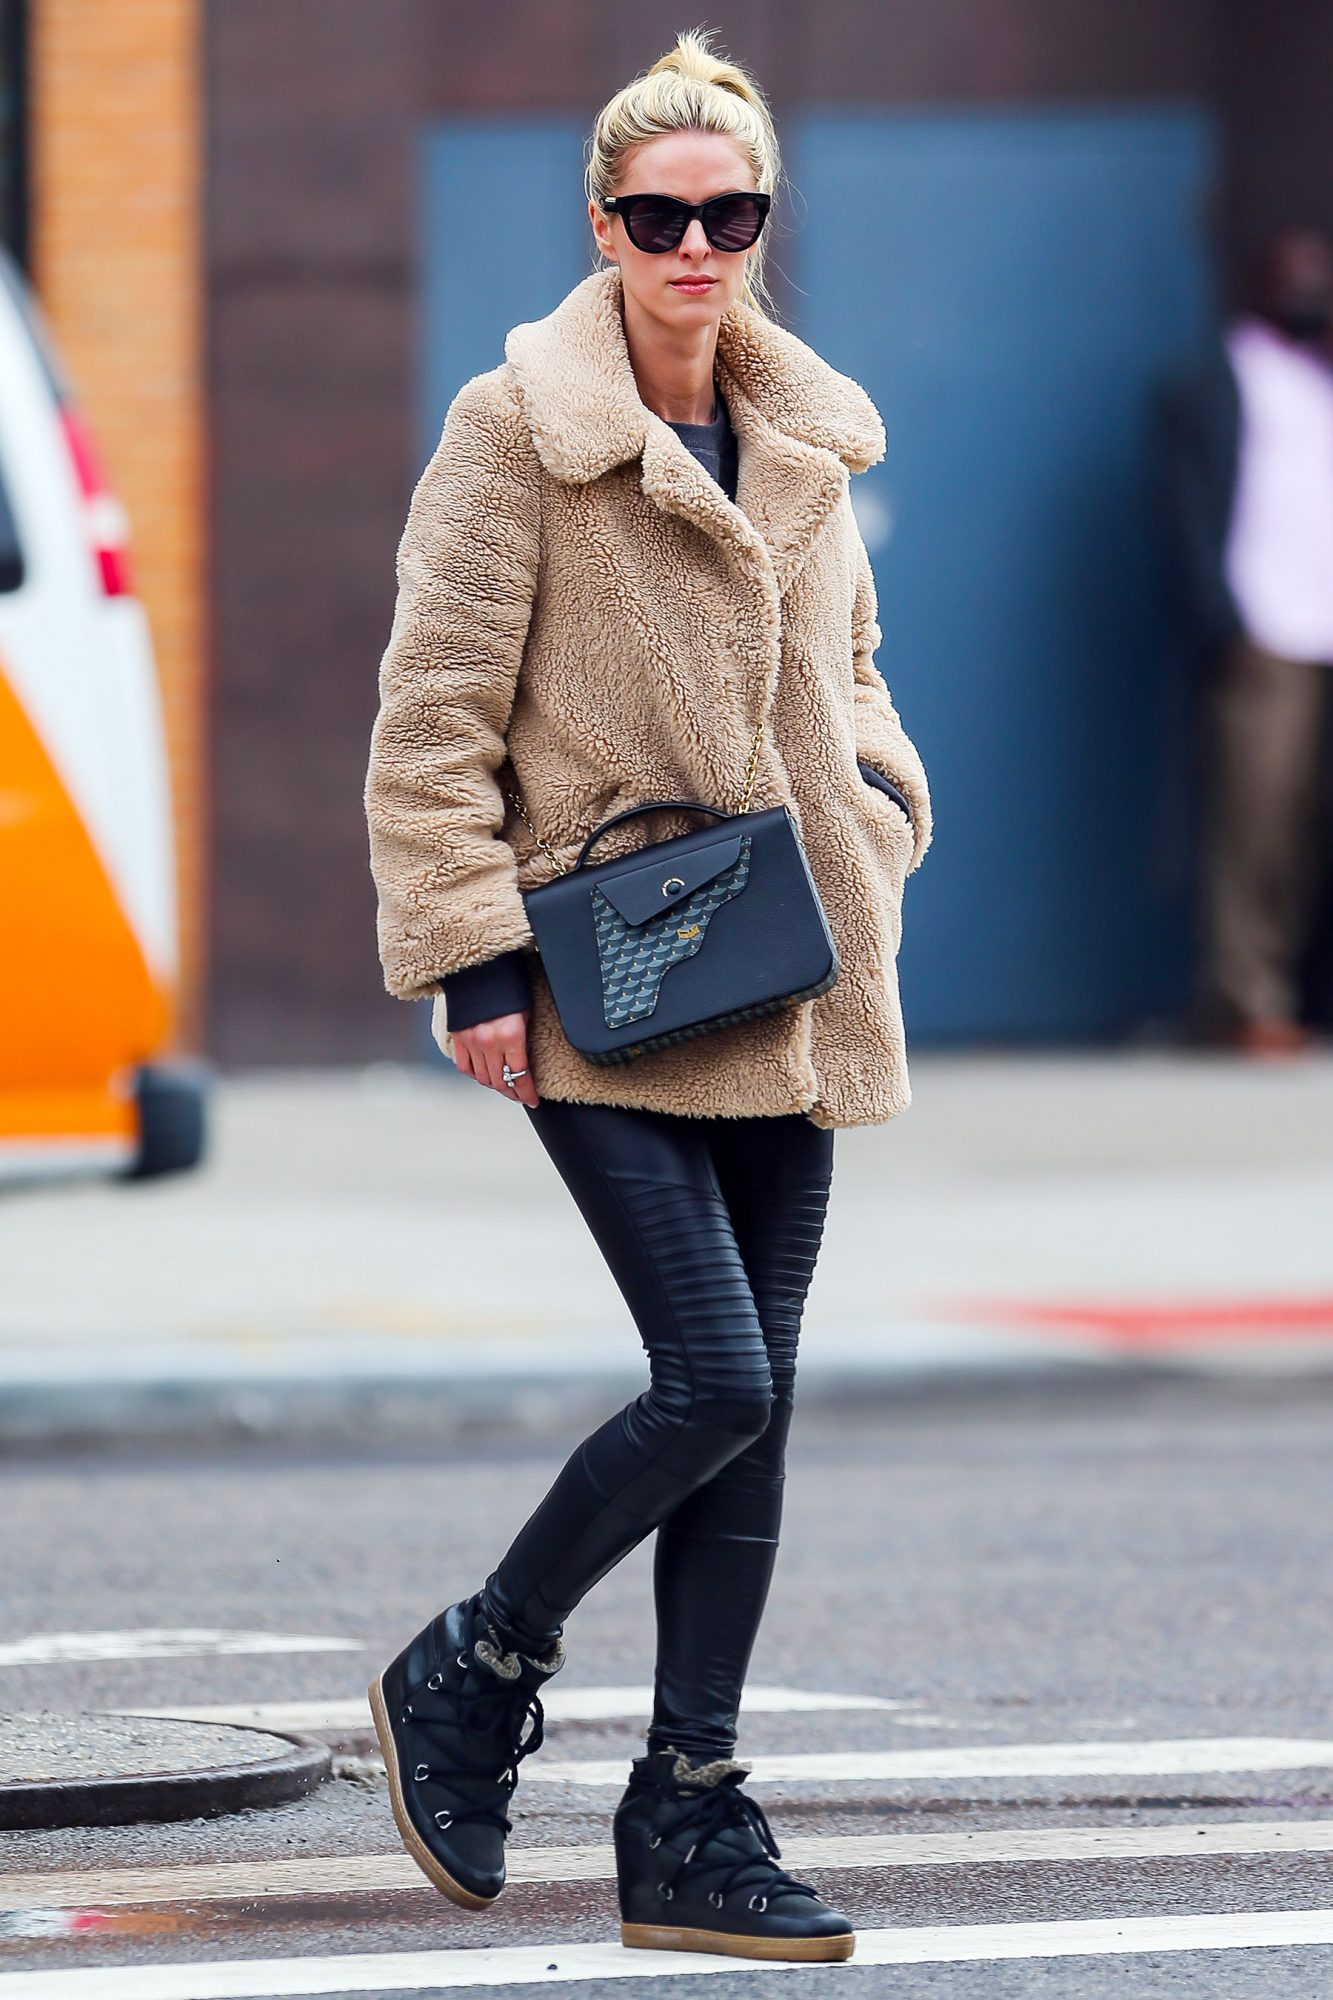 EXCLUSIVE: Nicky Hilton is Pictured Out on a Stroll in New York City.